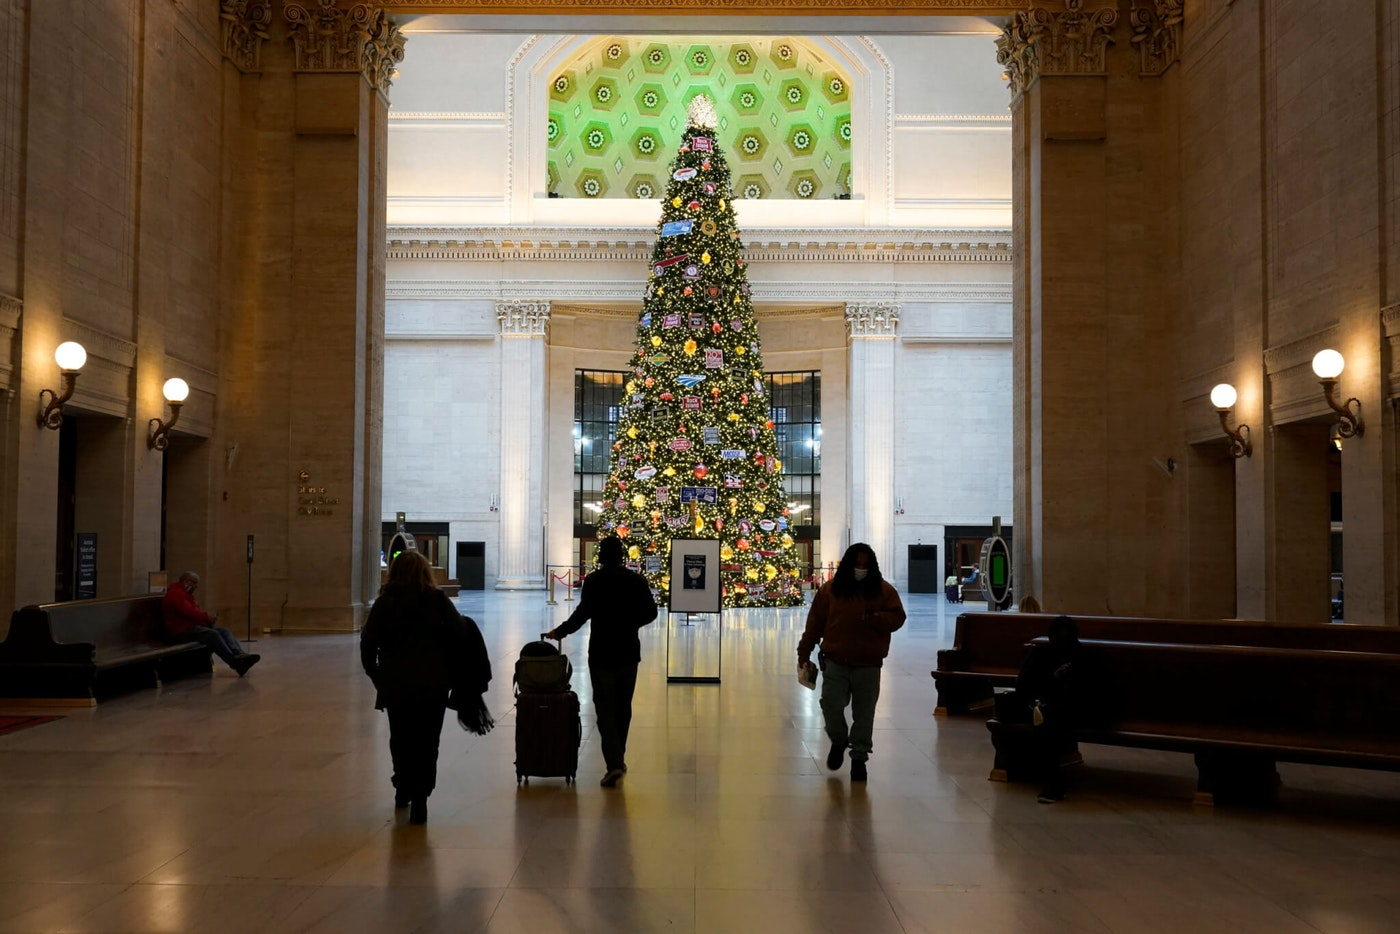 Rail passengers walk to the Grand Hall of Chicago's Union Station on Nov. 25, 2020, the day before Thanksgiving. (AP Photo/Charles Rex Arbogast)